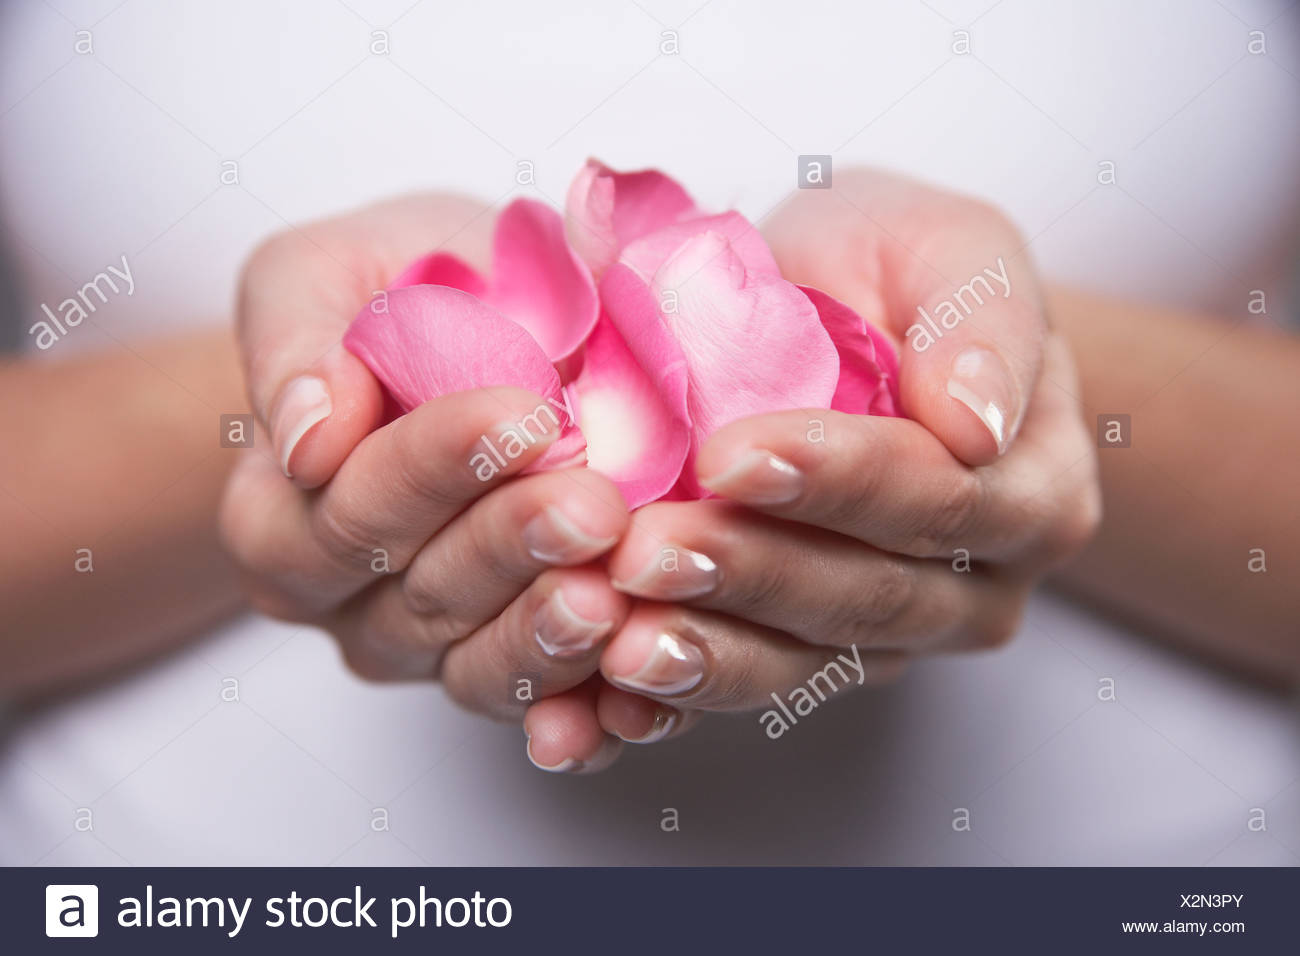 Woman cupping hands full of petals, mid section, close-up Stock Photo